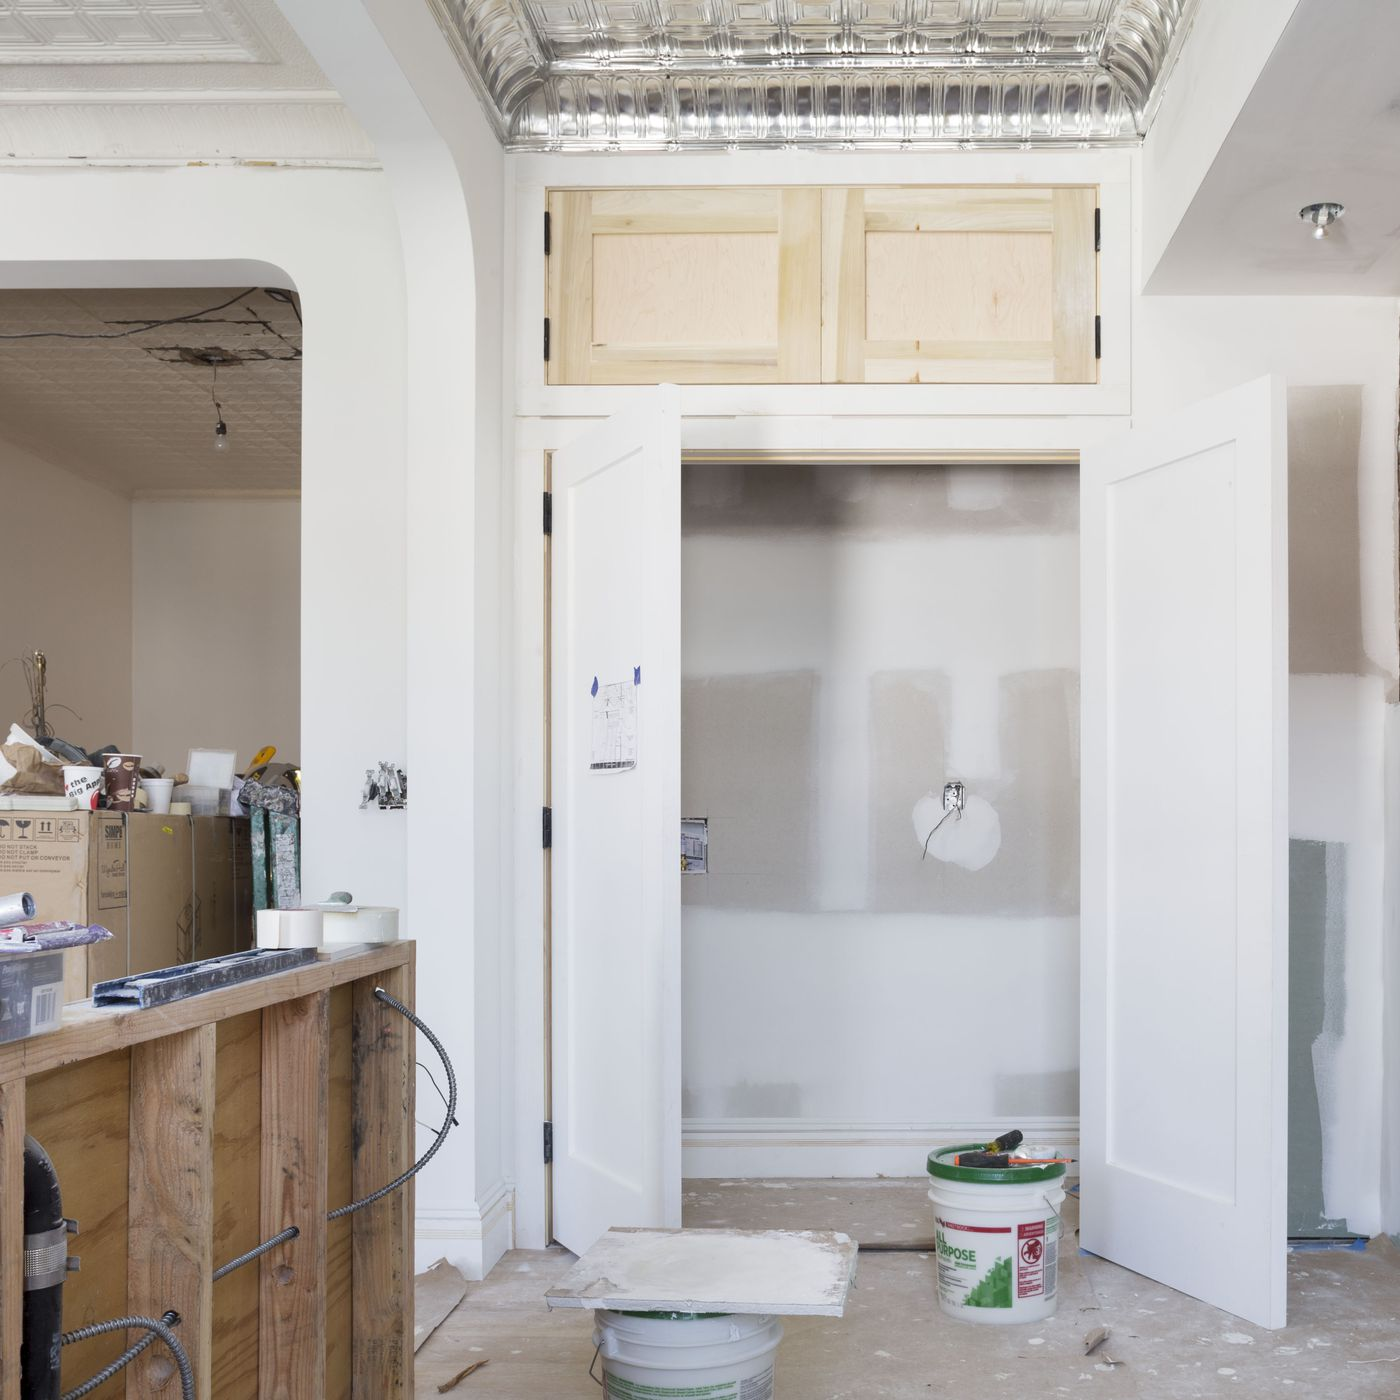 What renovations are worth doing? - Curbed